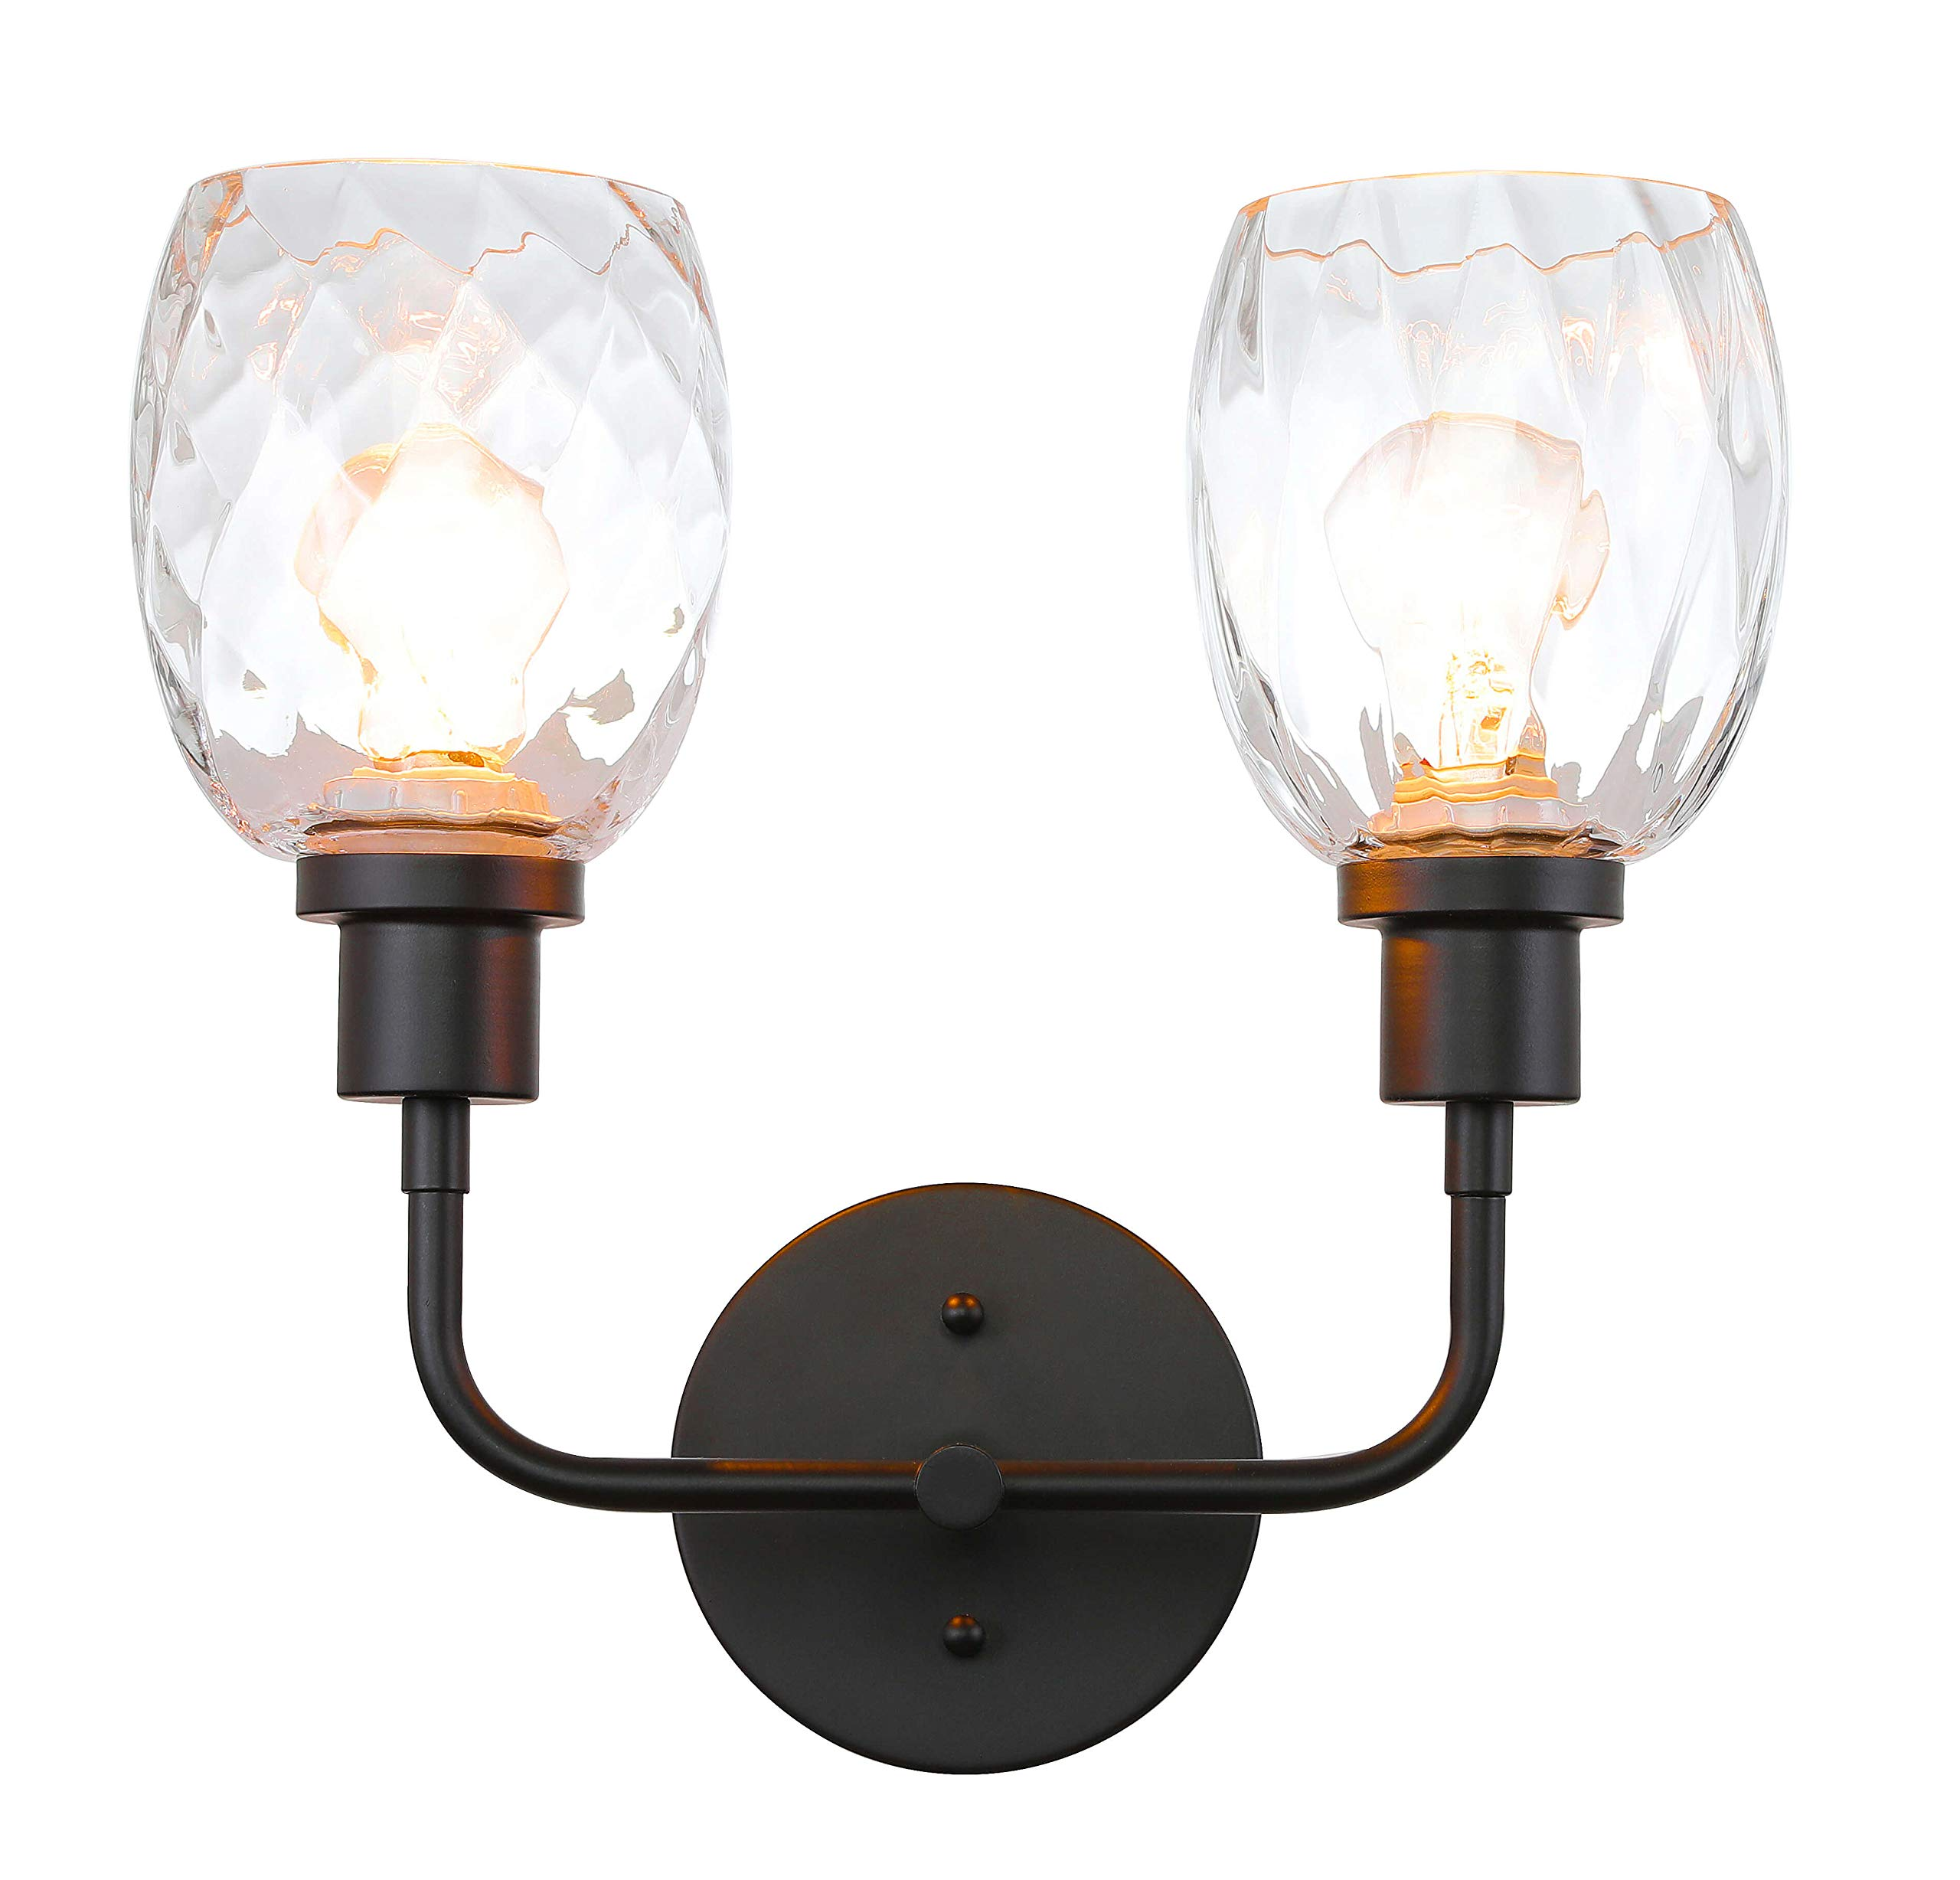 XiNBEi Lighting Wall Sconce, 2 Light Bathroom Vanity Wall Light with Clear Glass, Matte Black Finish XB-W1210-2-MBK